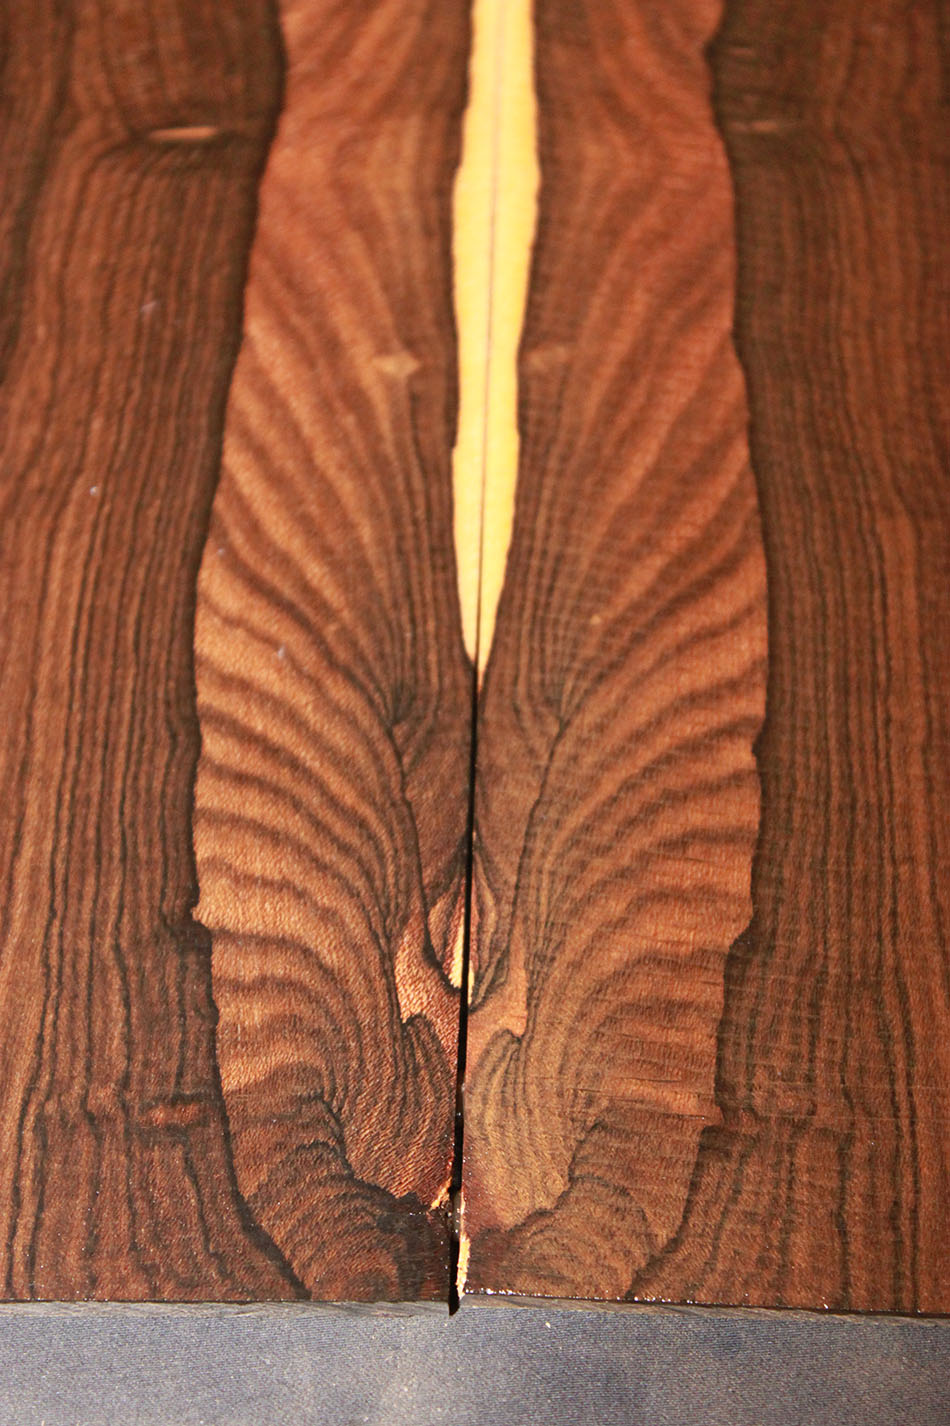 Wood For Sale Ziricote Wood For Sale